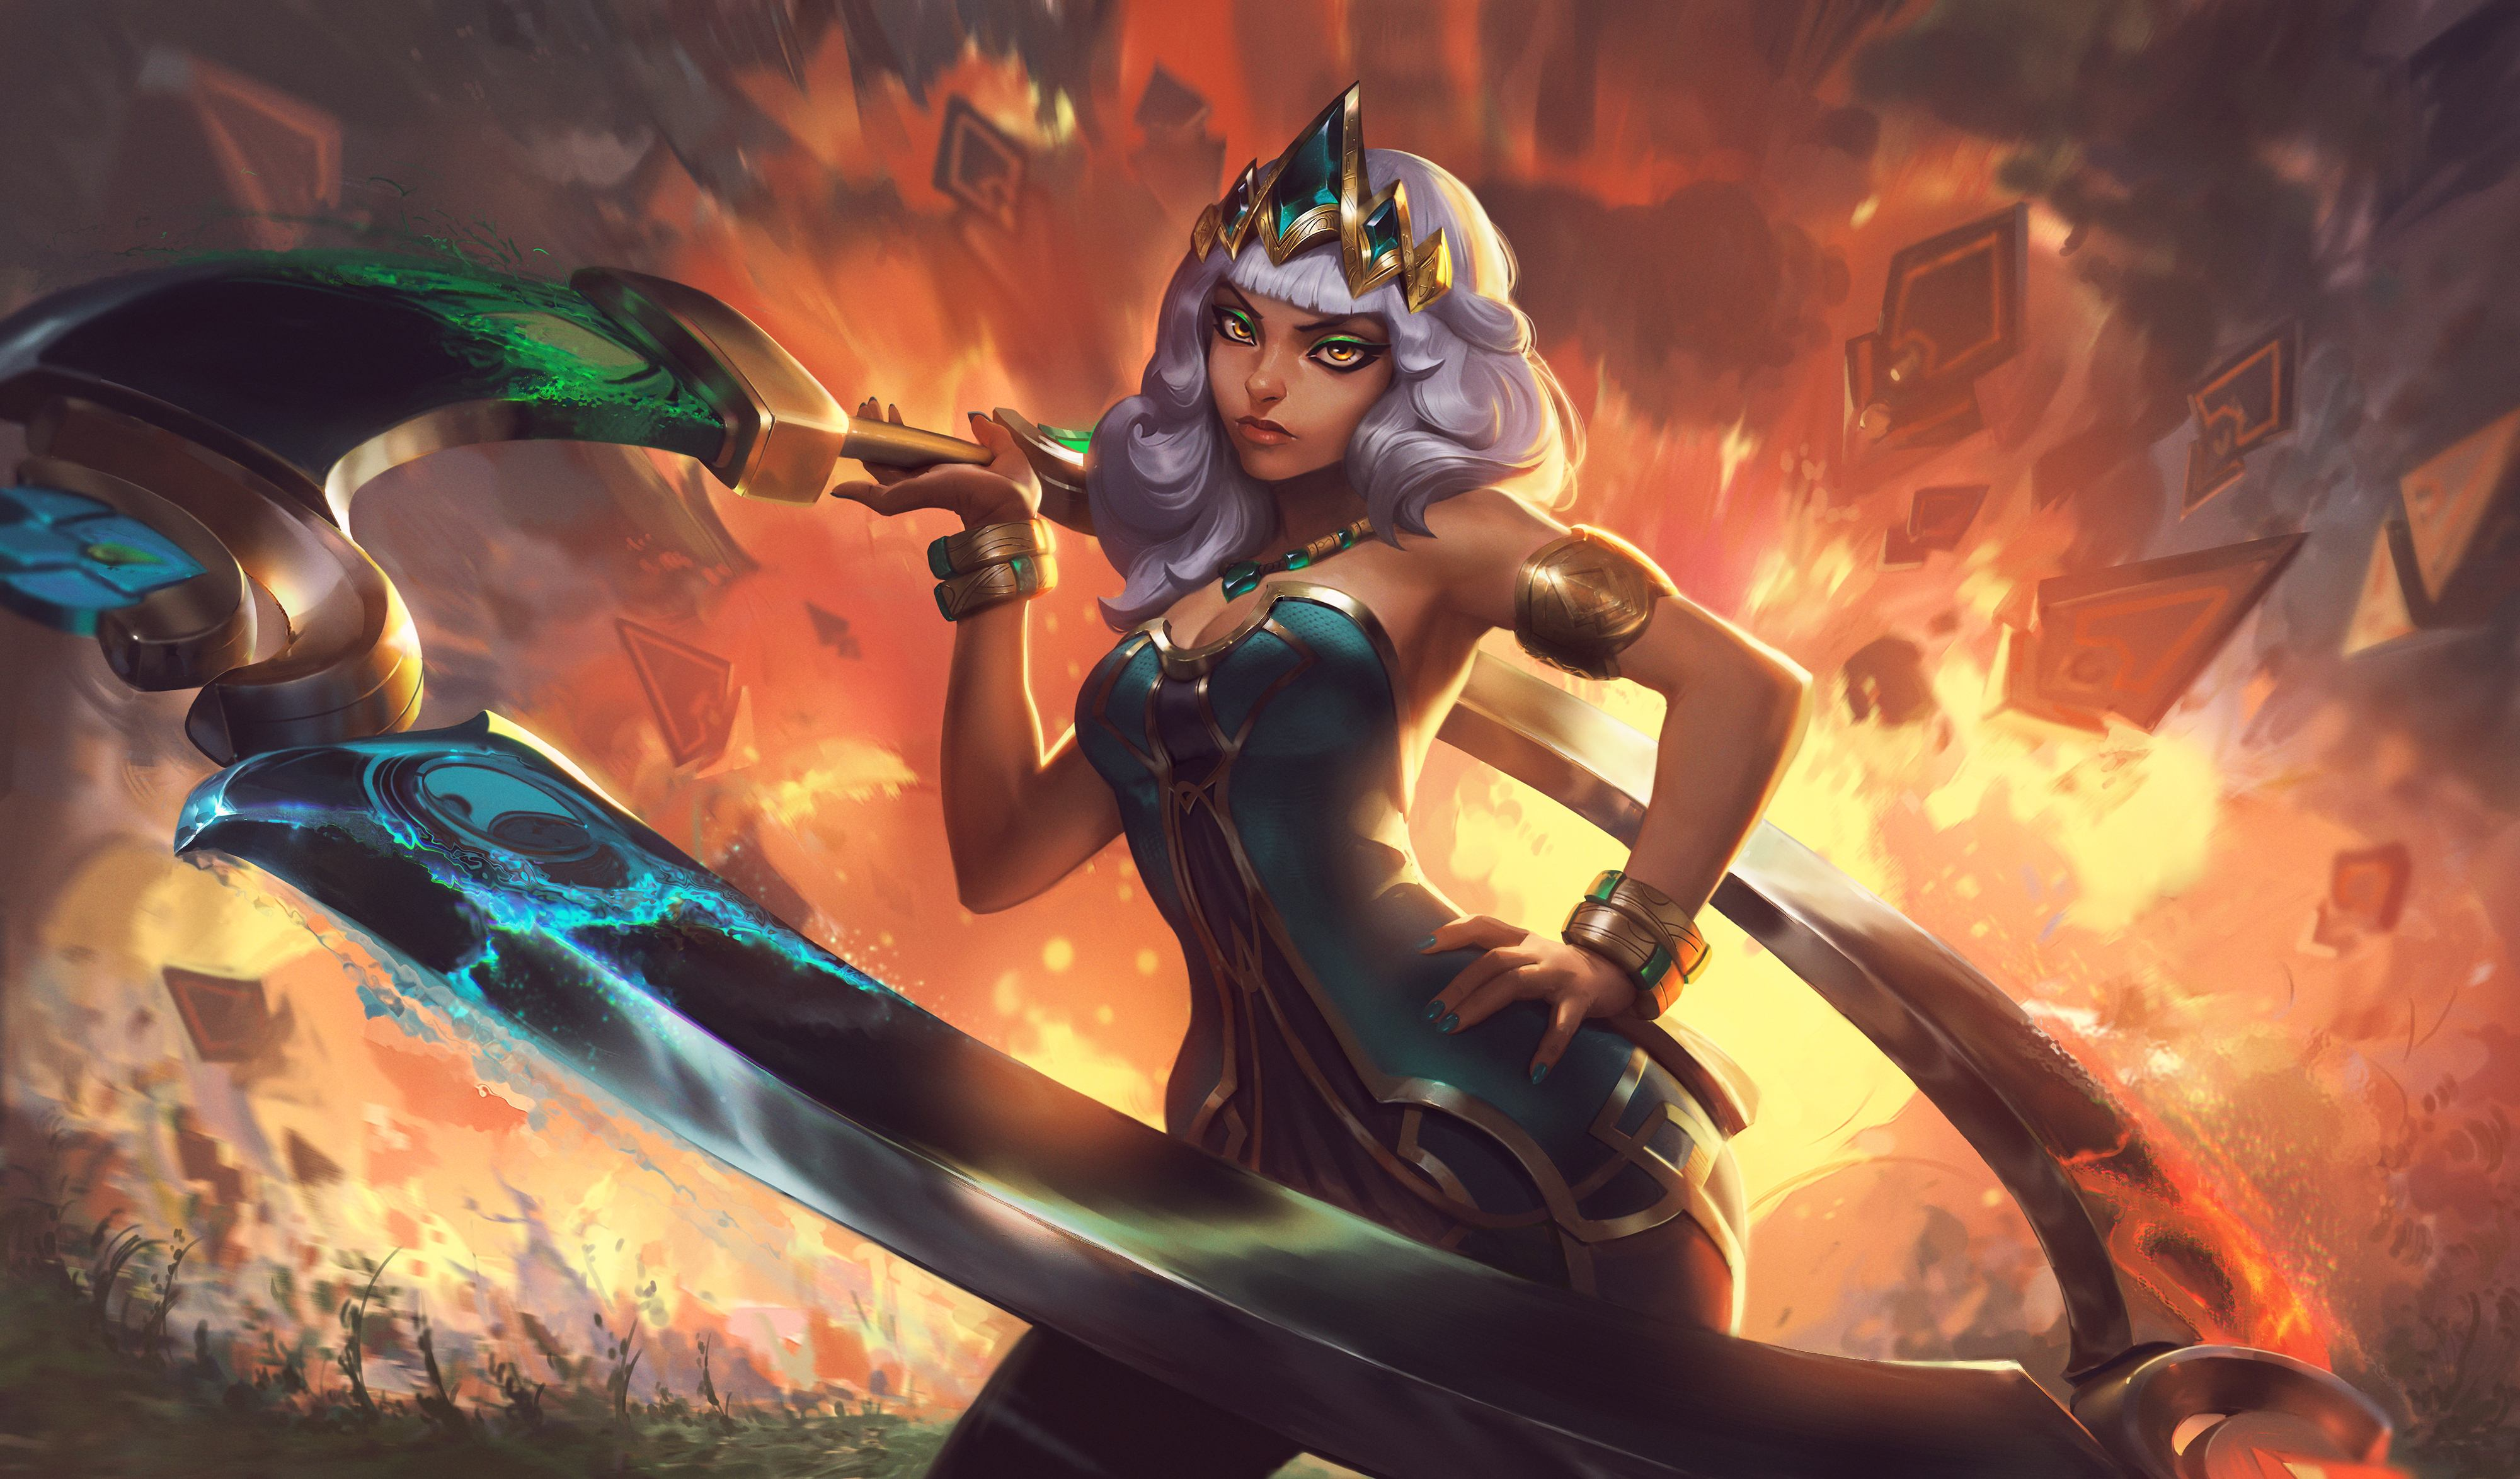 Qiyana Empress Of The Elements Splash Art Wallpapers Full Hd 4k Artist Riot Games League Of Legends Waifu Clan Anime Pics Digital Art